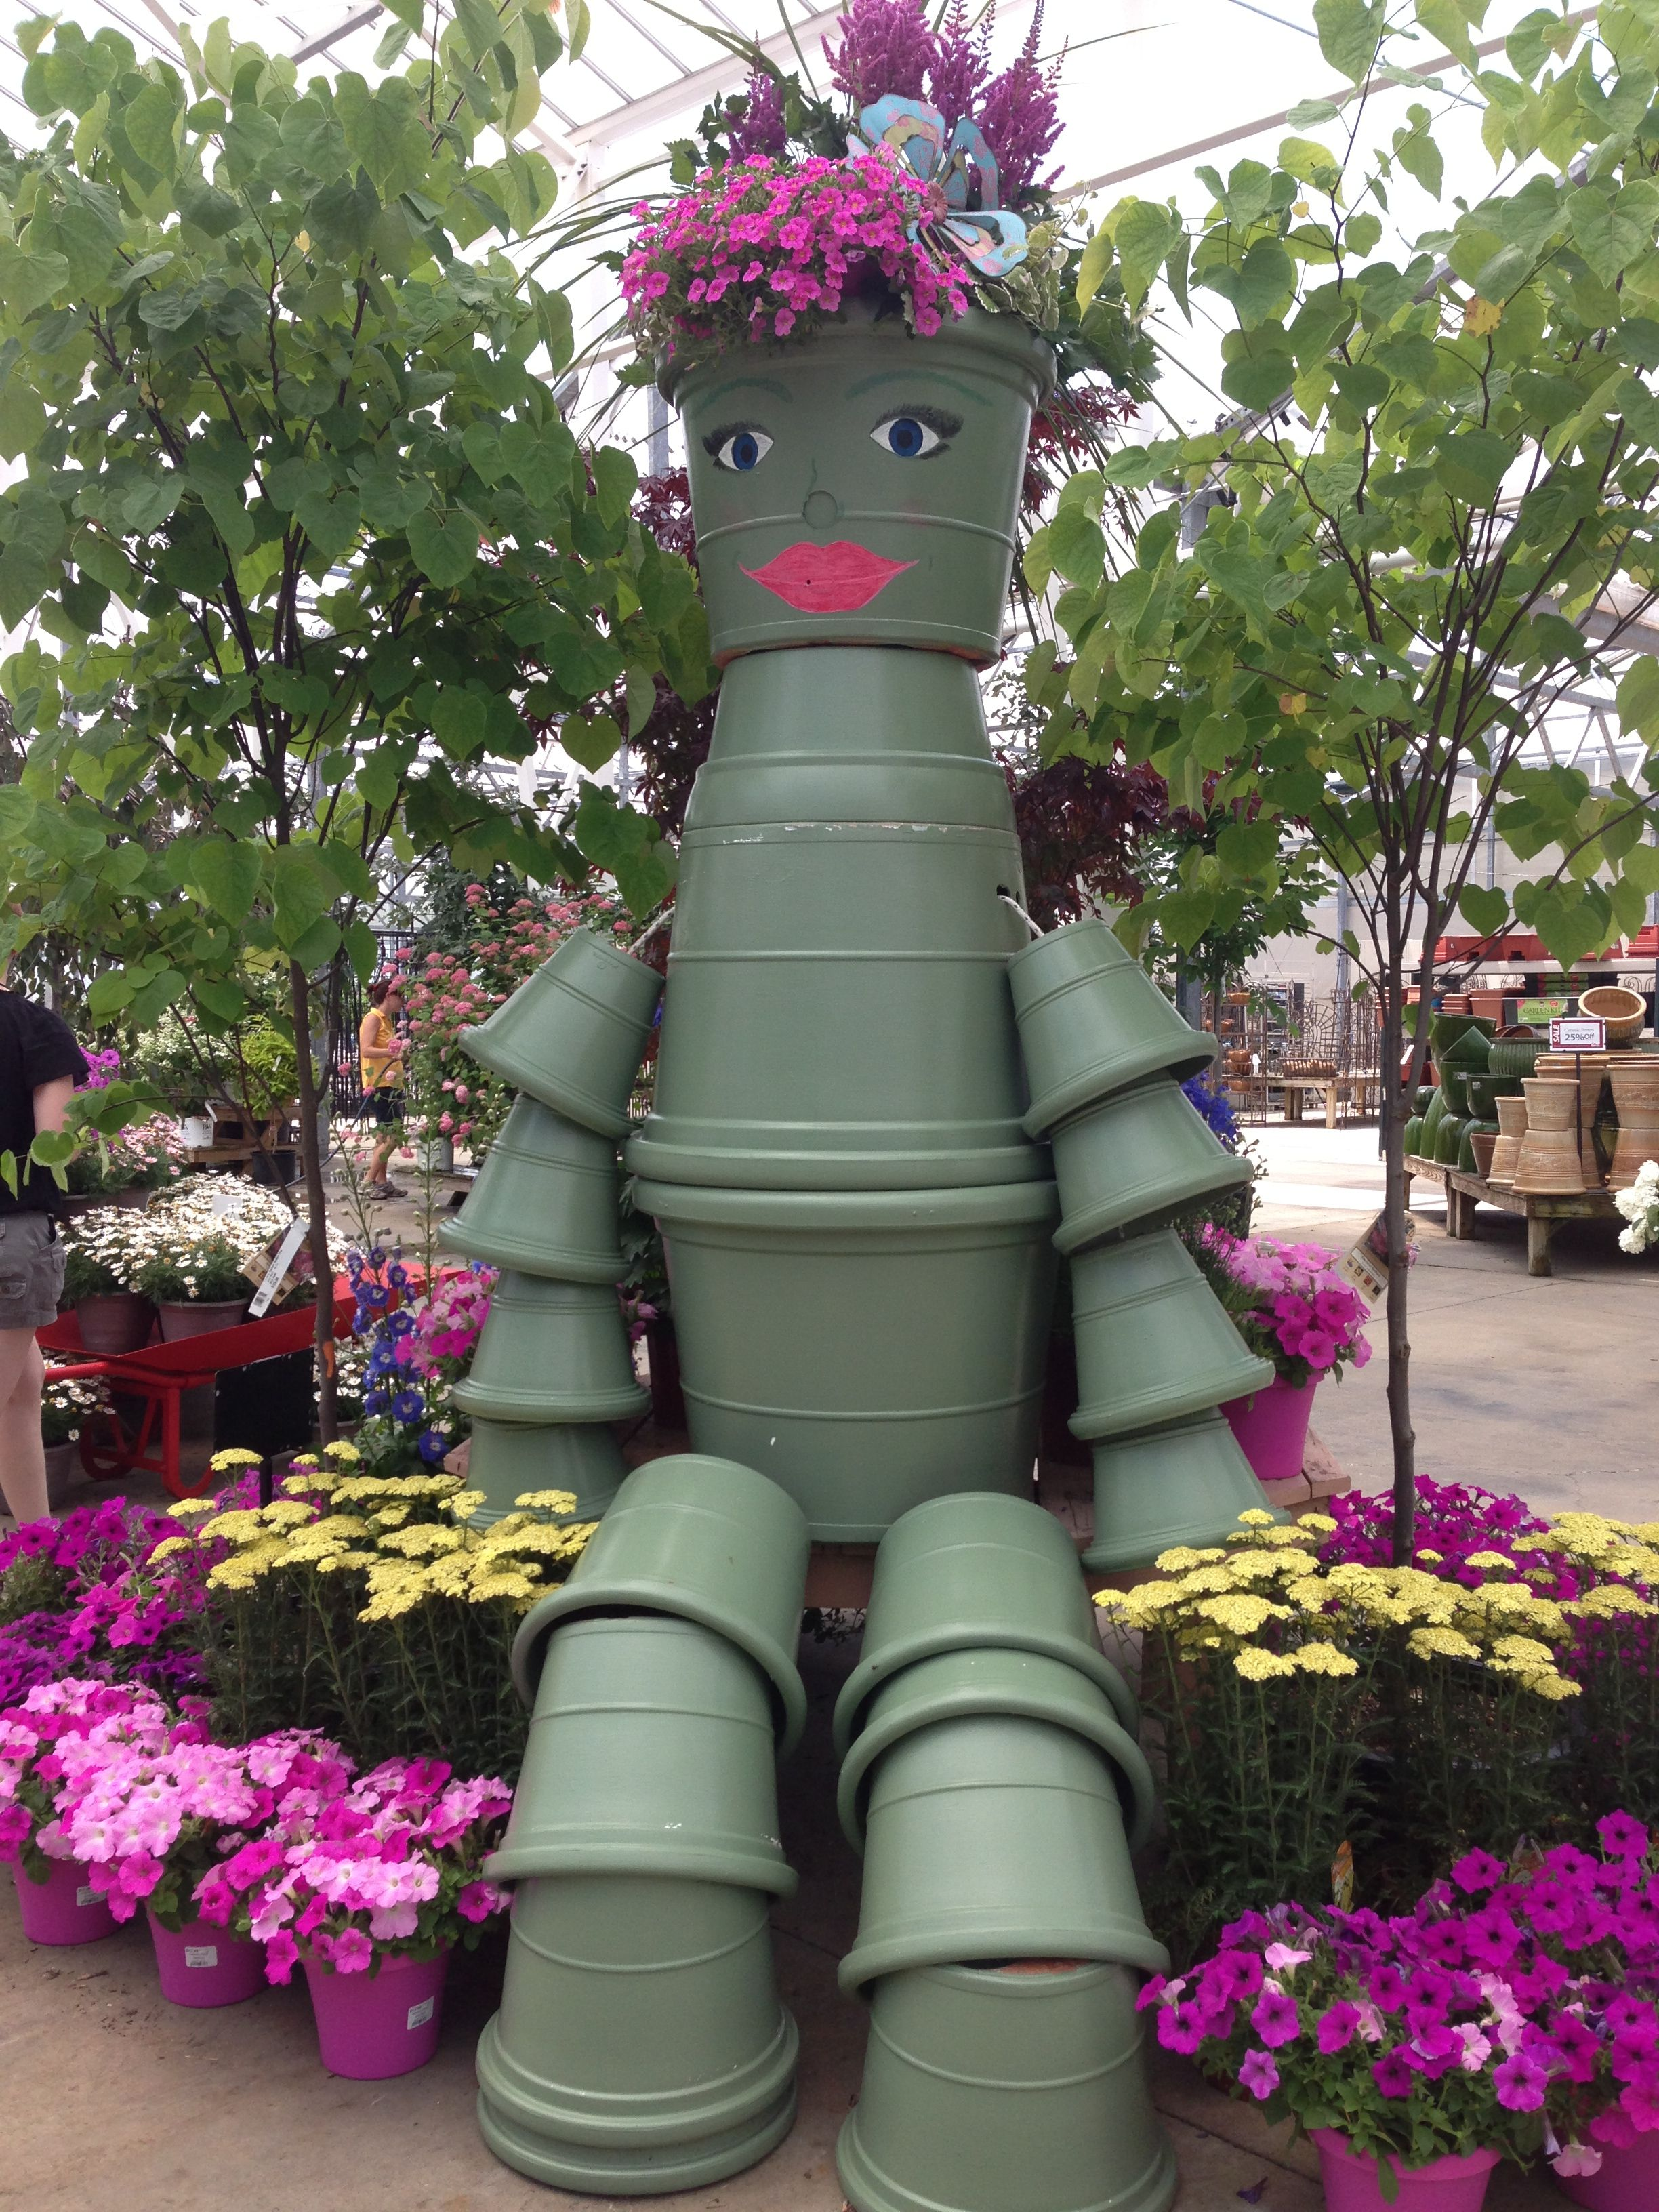 Cute Ohio garden center Garden center displays, Garden